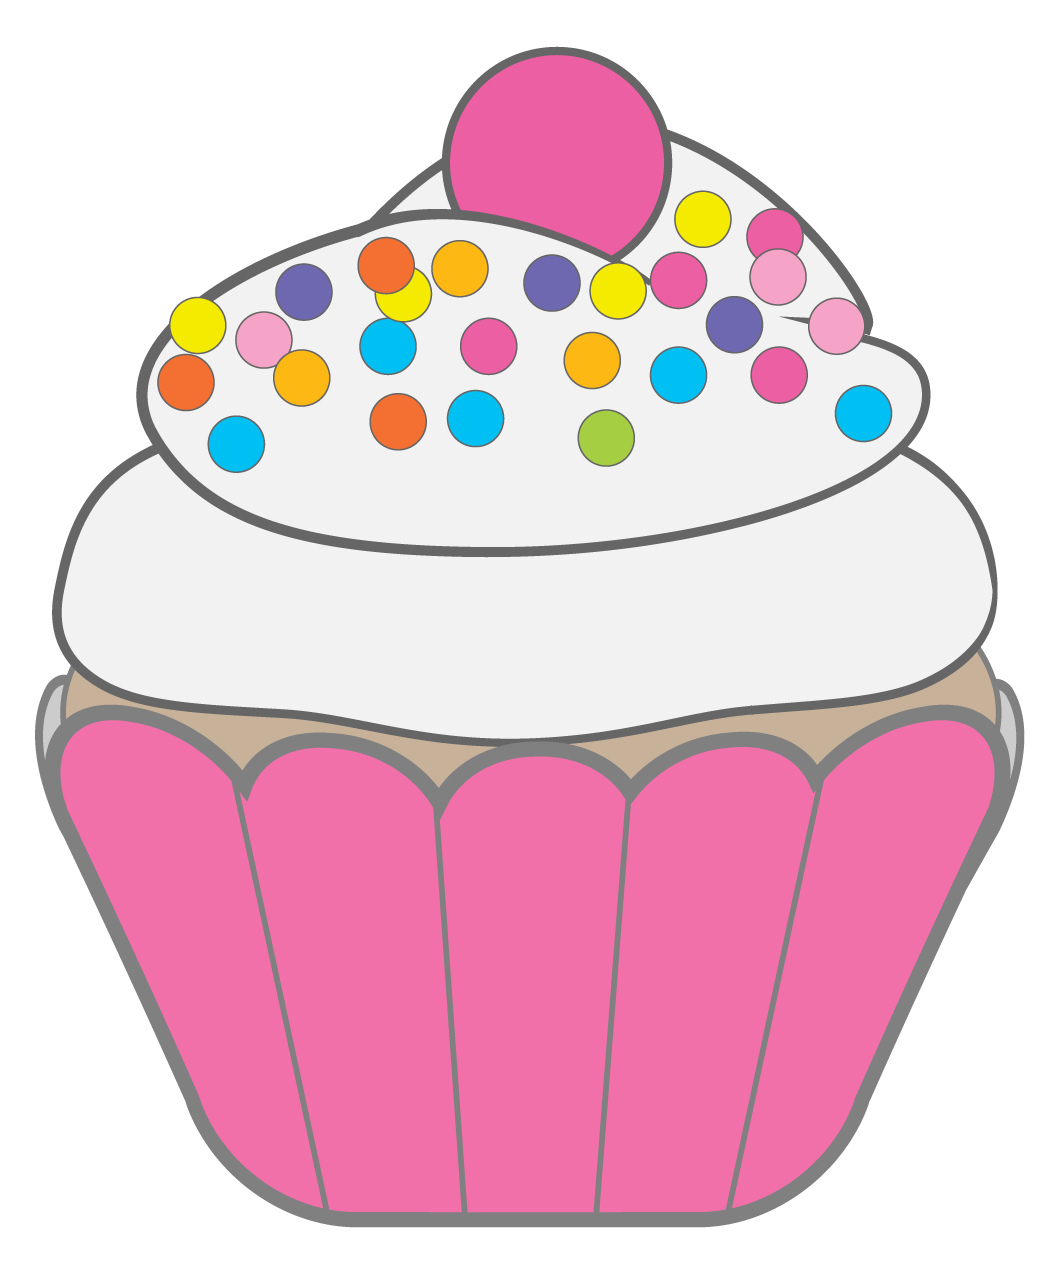 jpg transparent download Free cupcake cliparts download. Muffins clipart january.